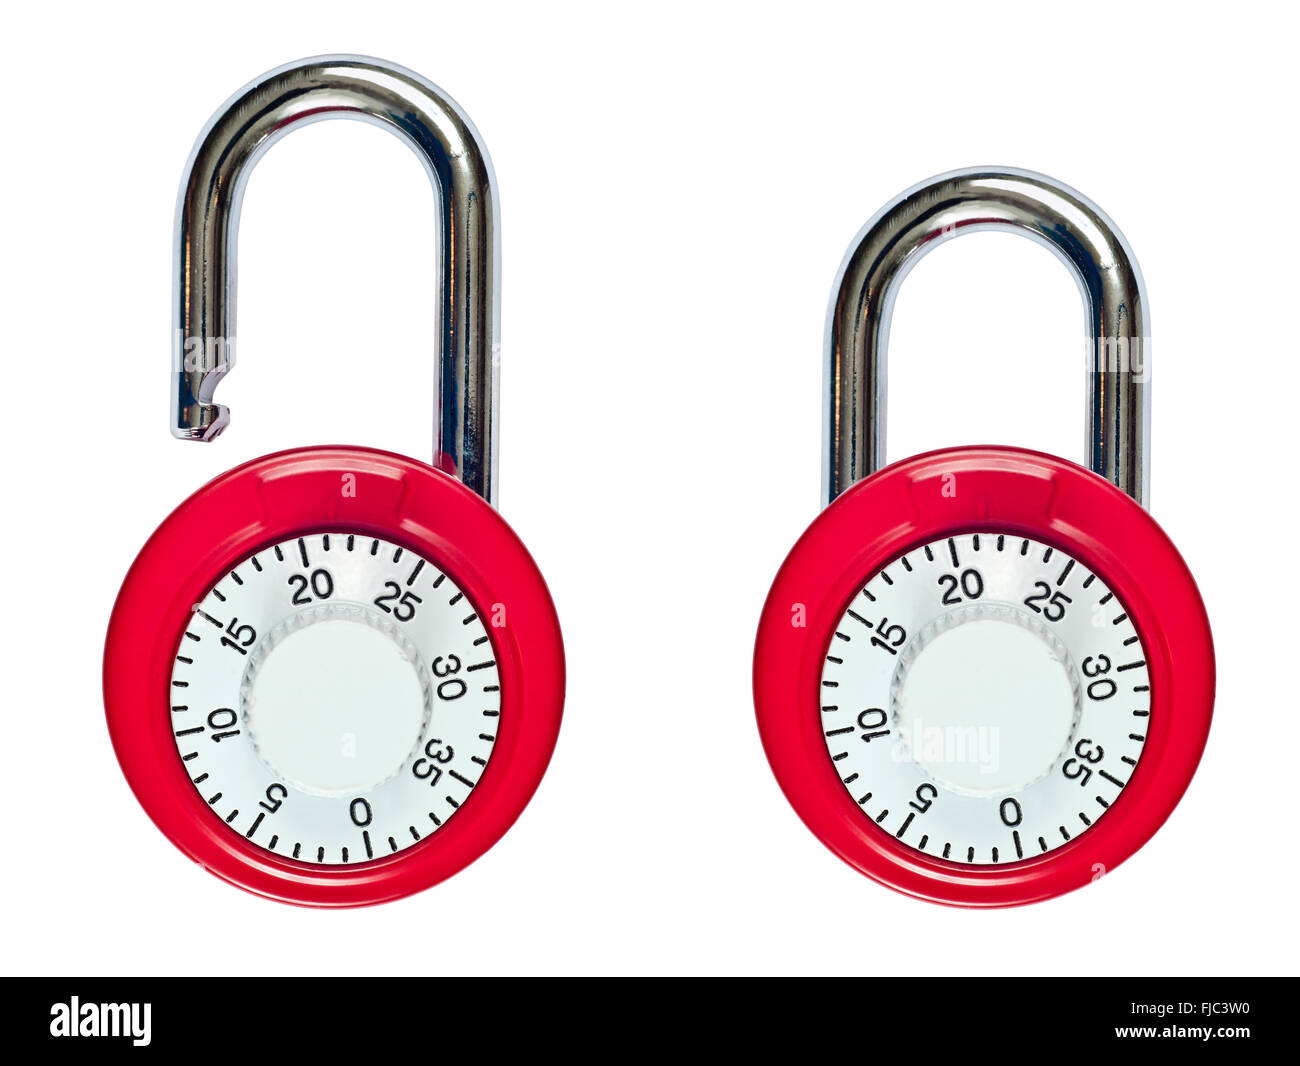 Combination Lock Open and Locked - Stock Image